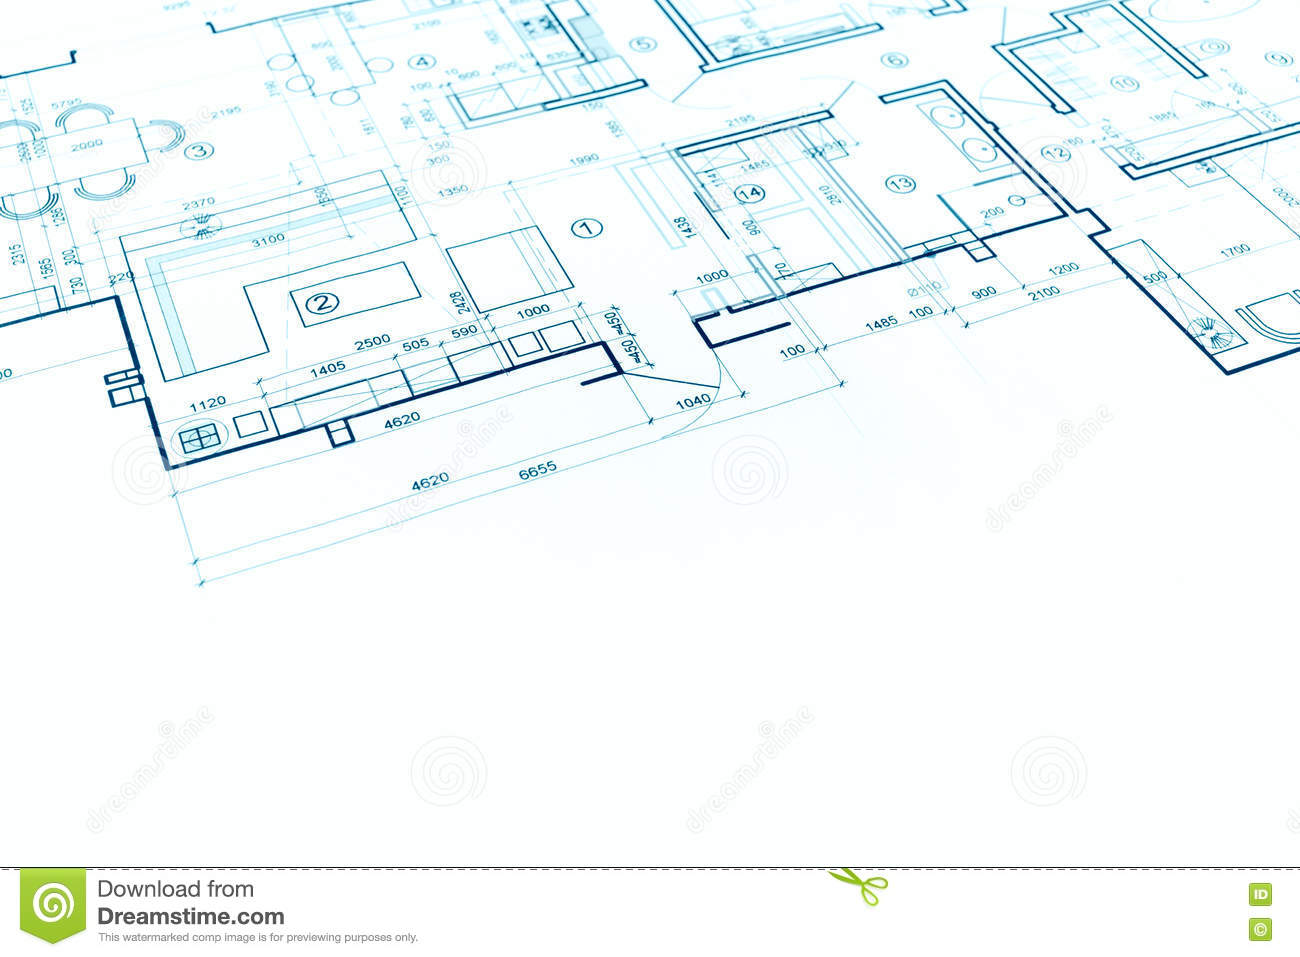 Charming Download Blueprint Floor Plan, Technical Drawing, Construction Background  Stock Photo   Image Of Home